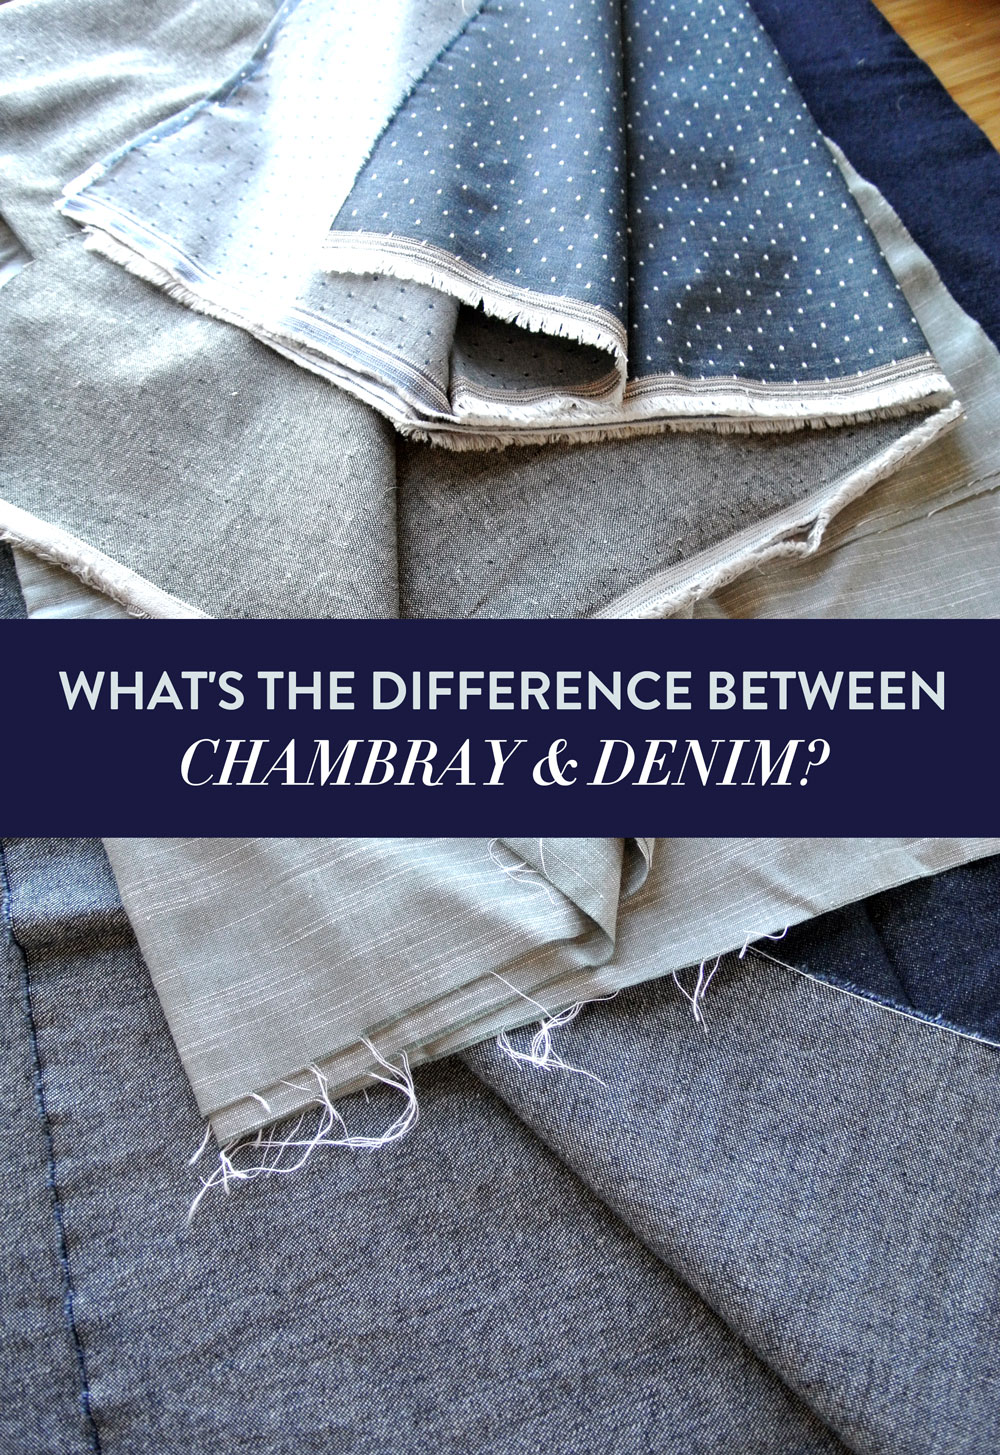 https://suzyquilts.com/whats-the-difference-between-chambray-and-denim/